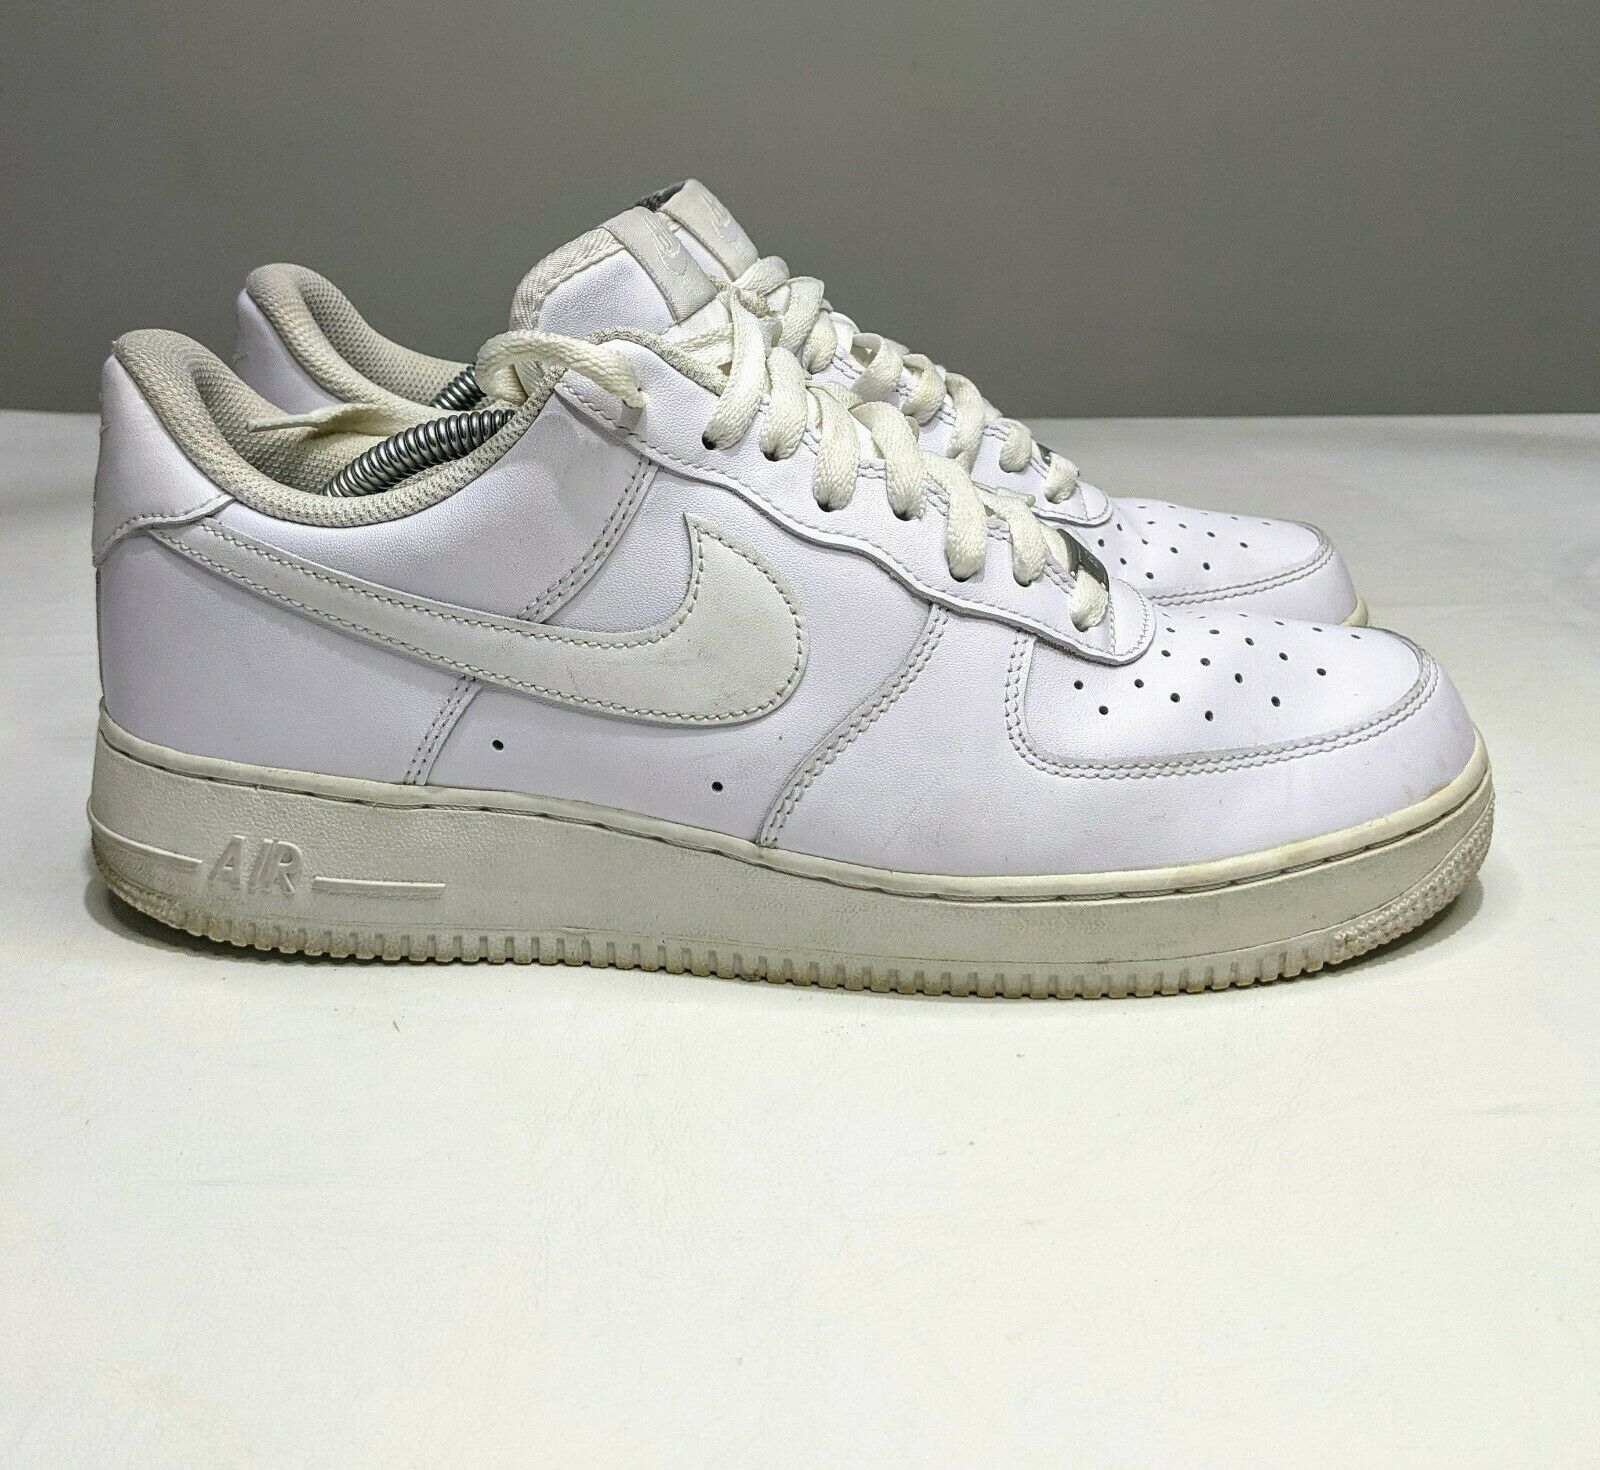 Nike Air Force 1 Low Size 11 - image 1